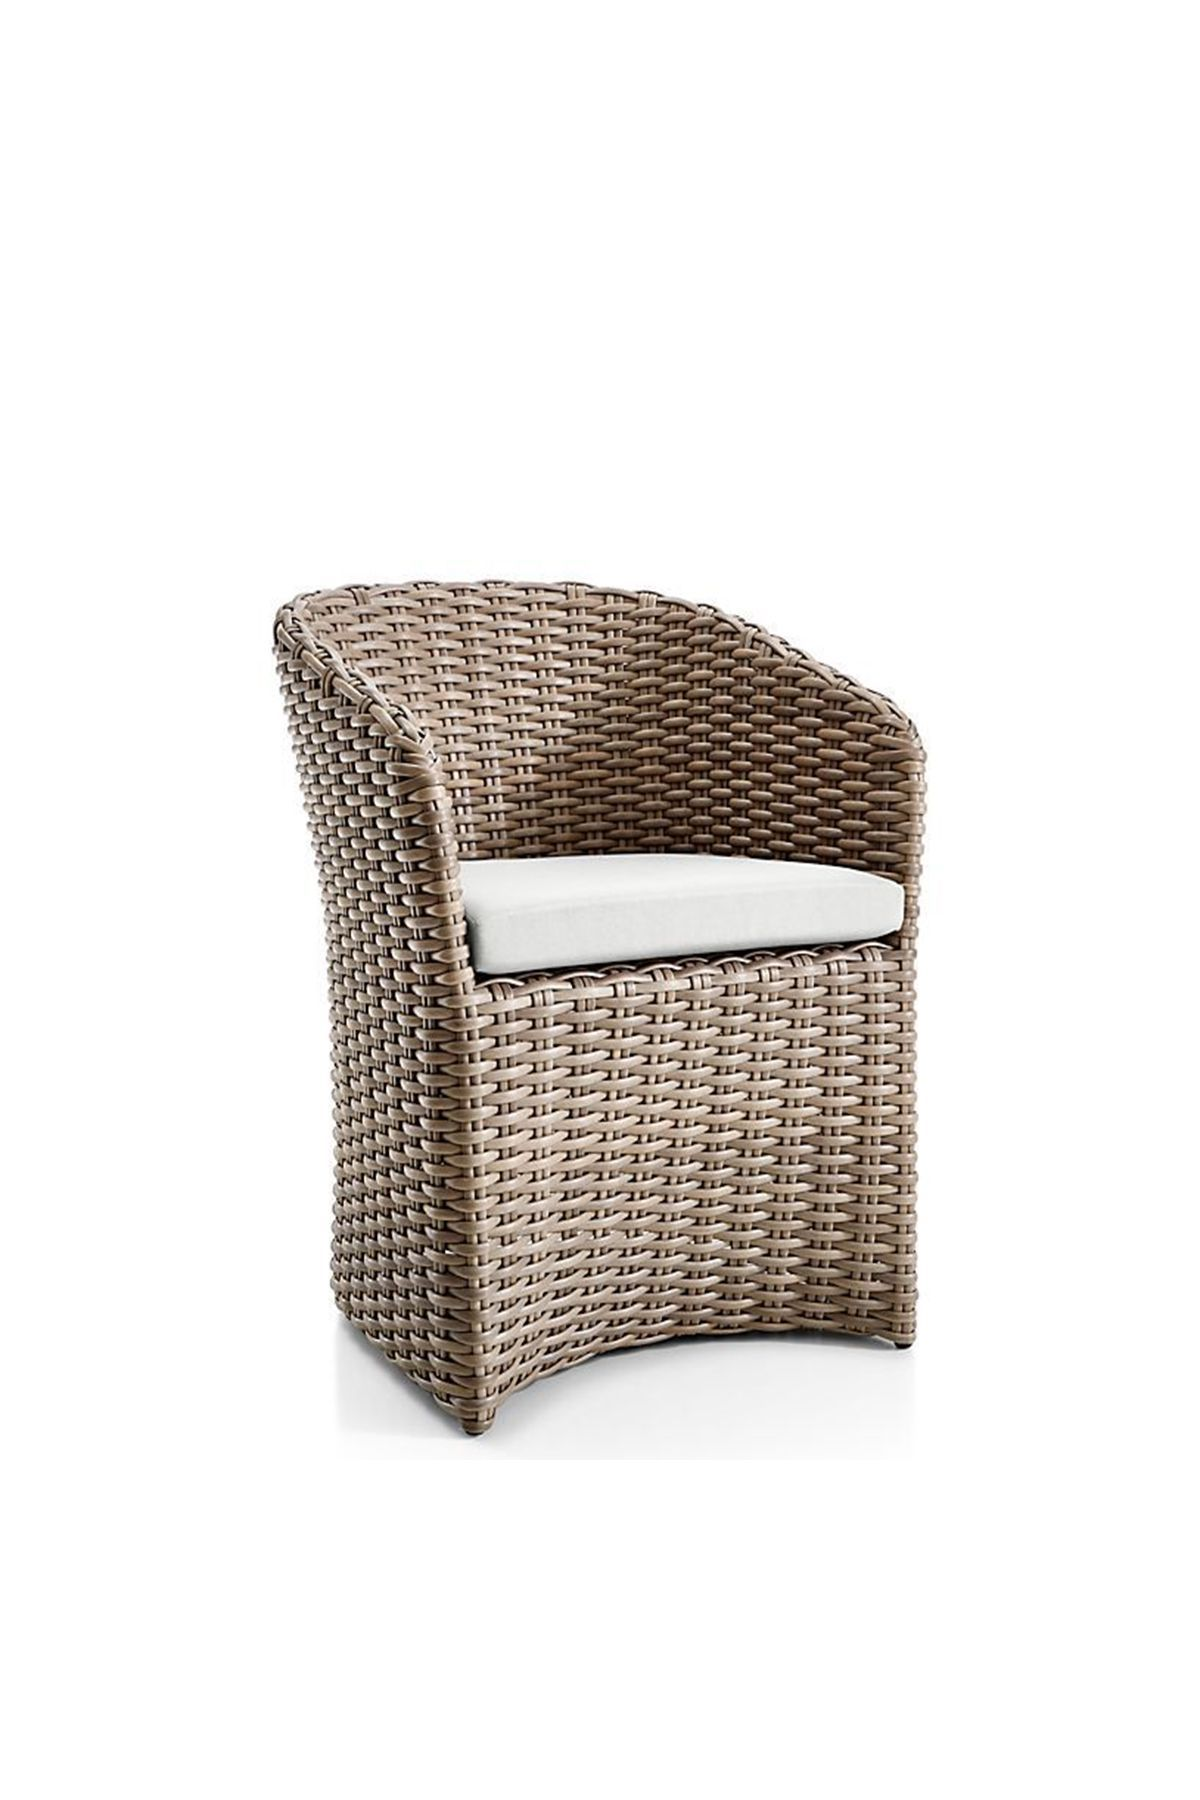 Garten Lounge Dining Cayman Outdoor Dining Chair With White Sand Sunbrella Cushion